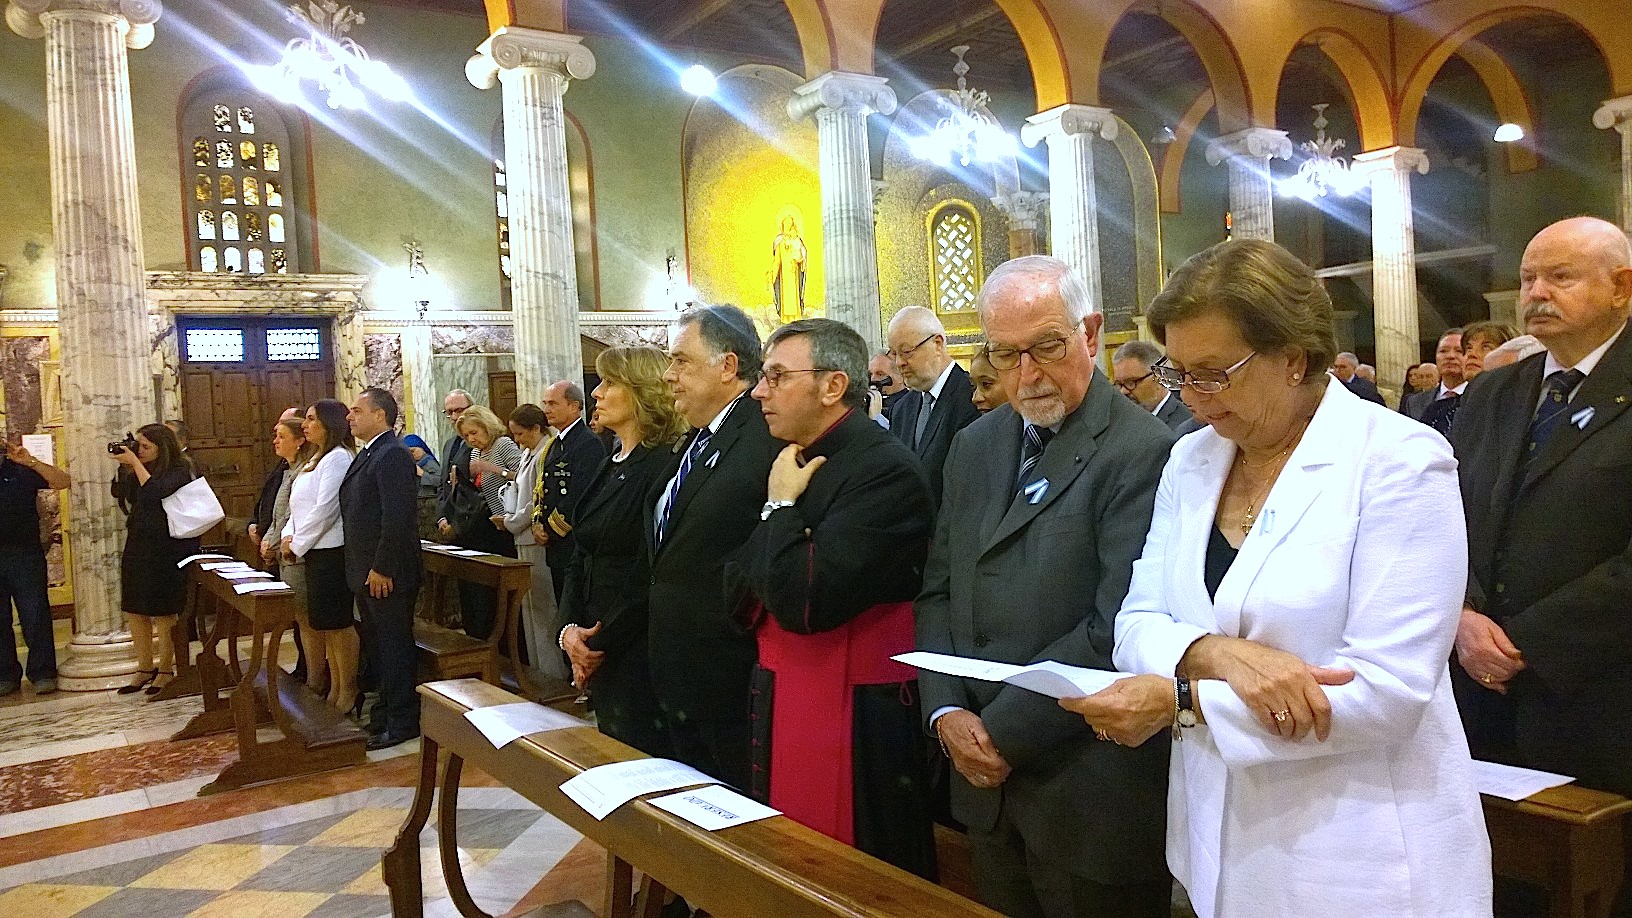 Holy mass in the National church of Argentina in Rome